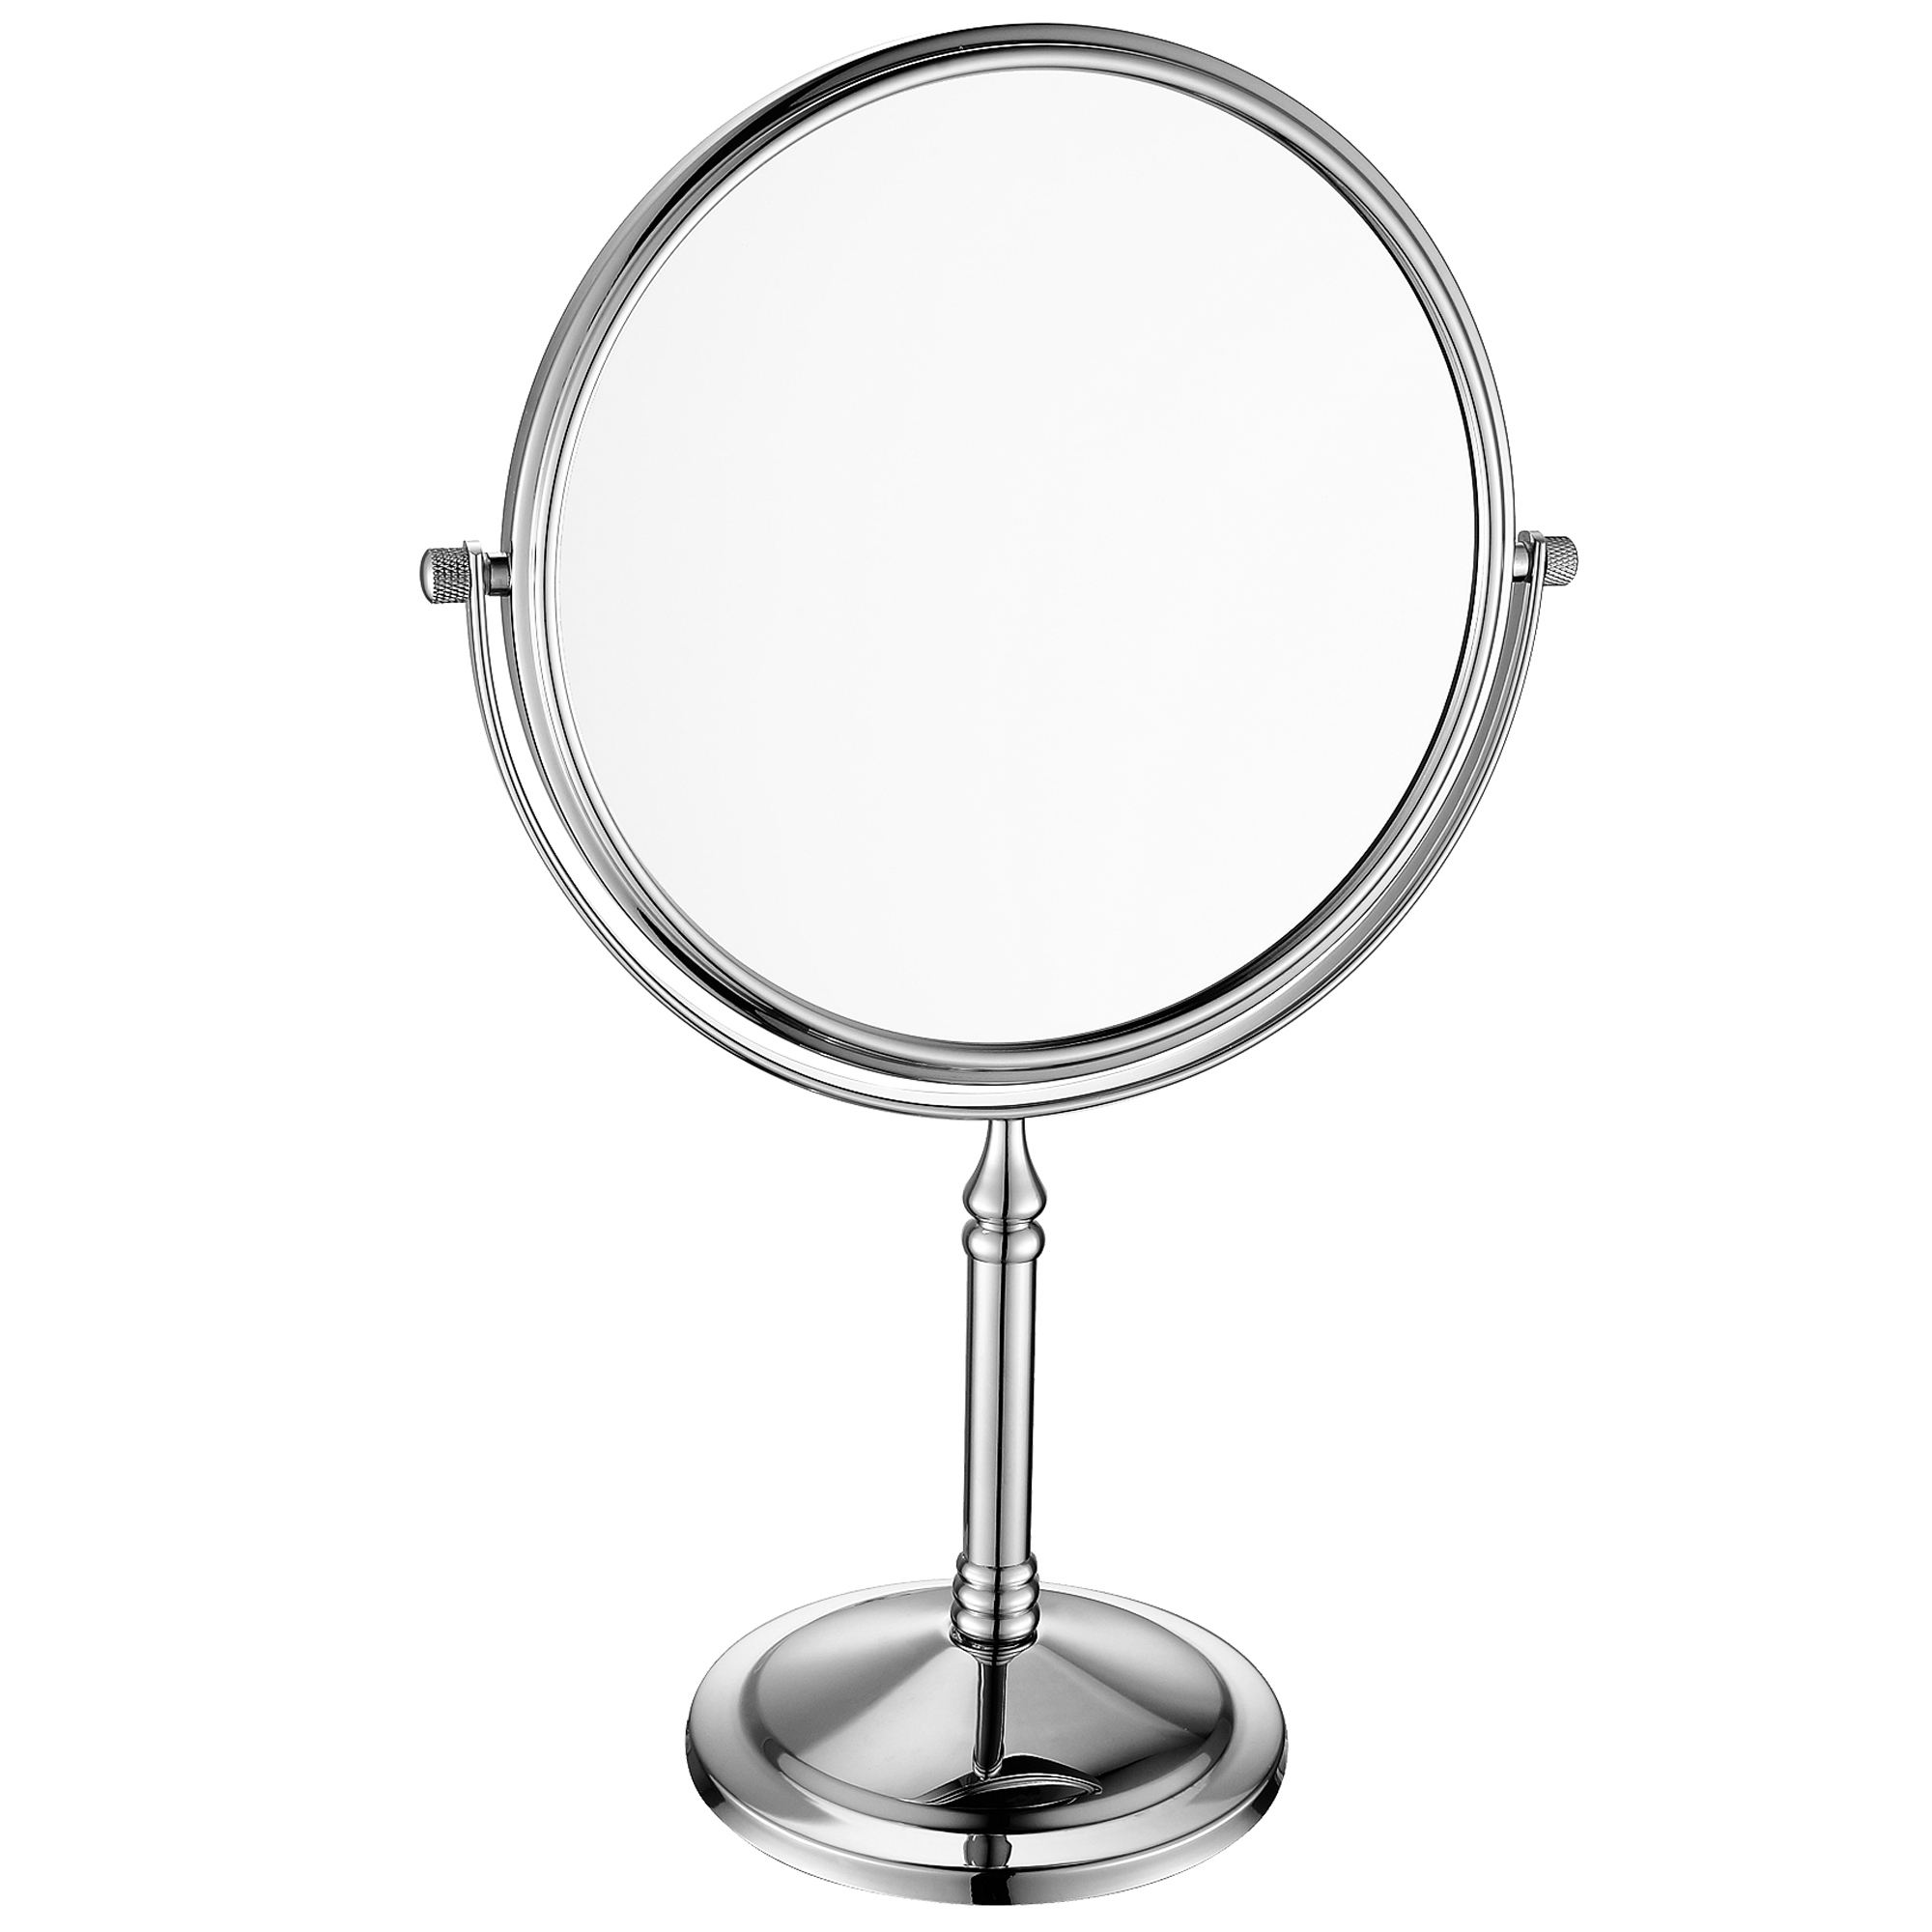 Bathroom mirror Magnifying Mirror Reliable good quality dressing table mirror with metal support